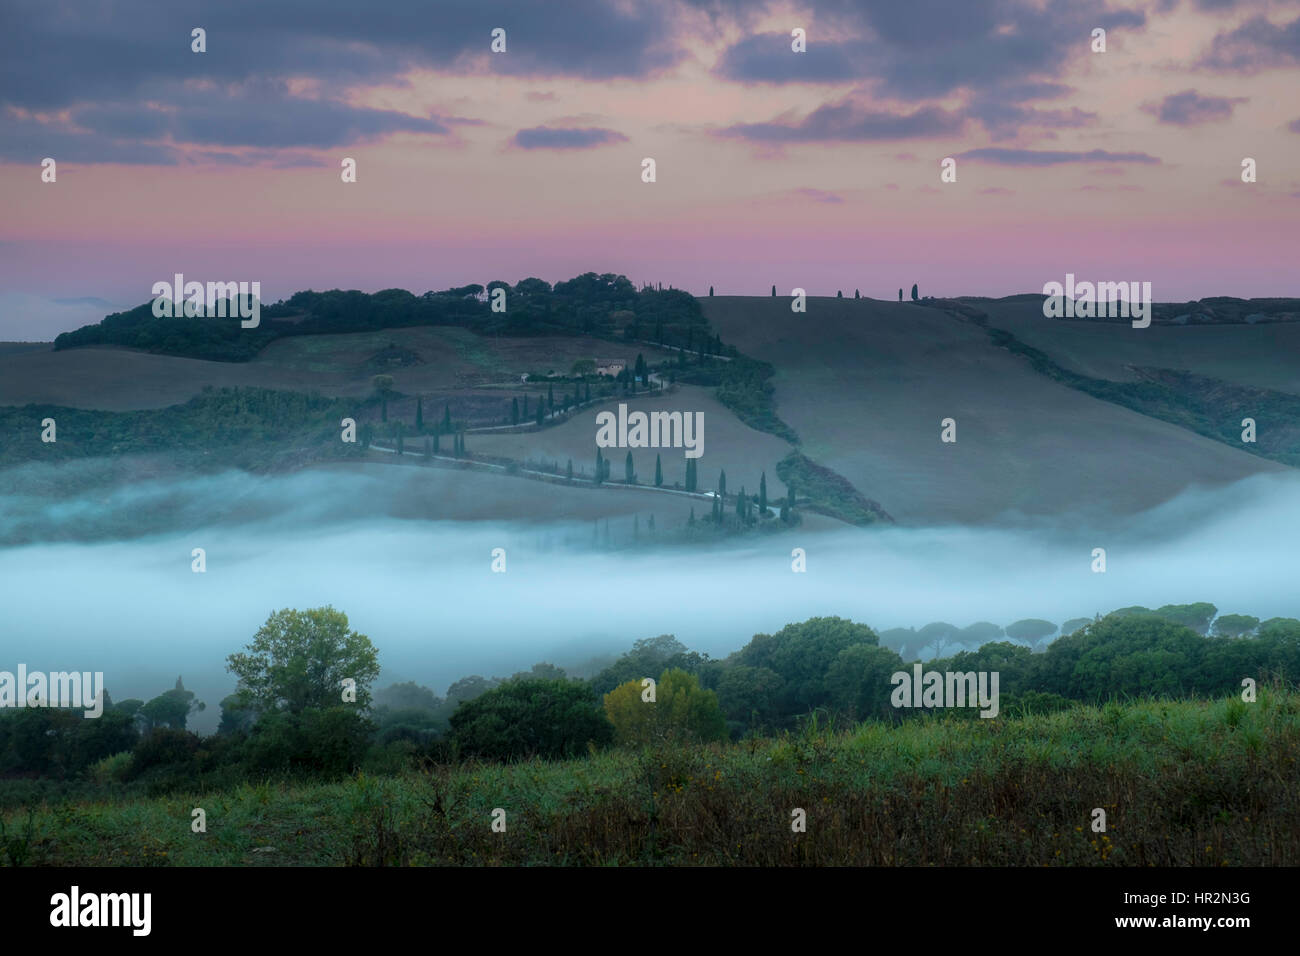 La Foce at sunrising - Stock Image